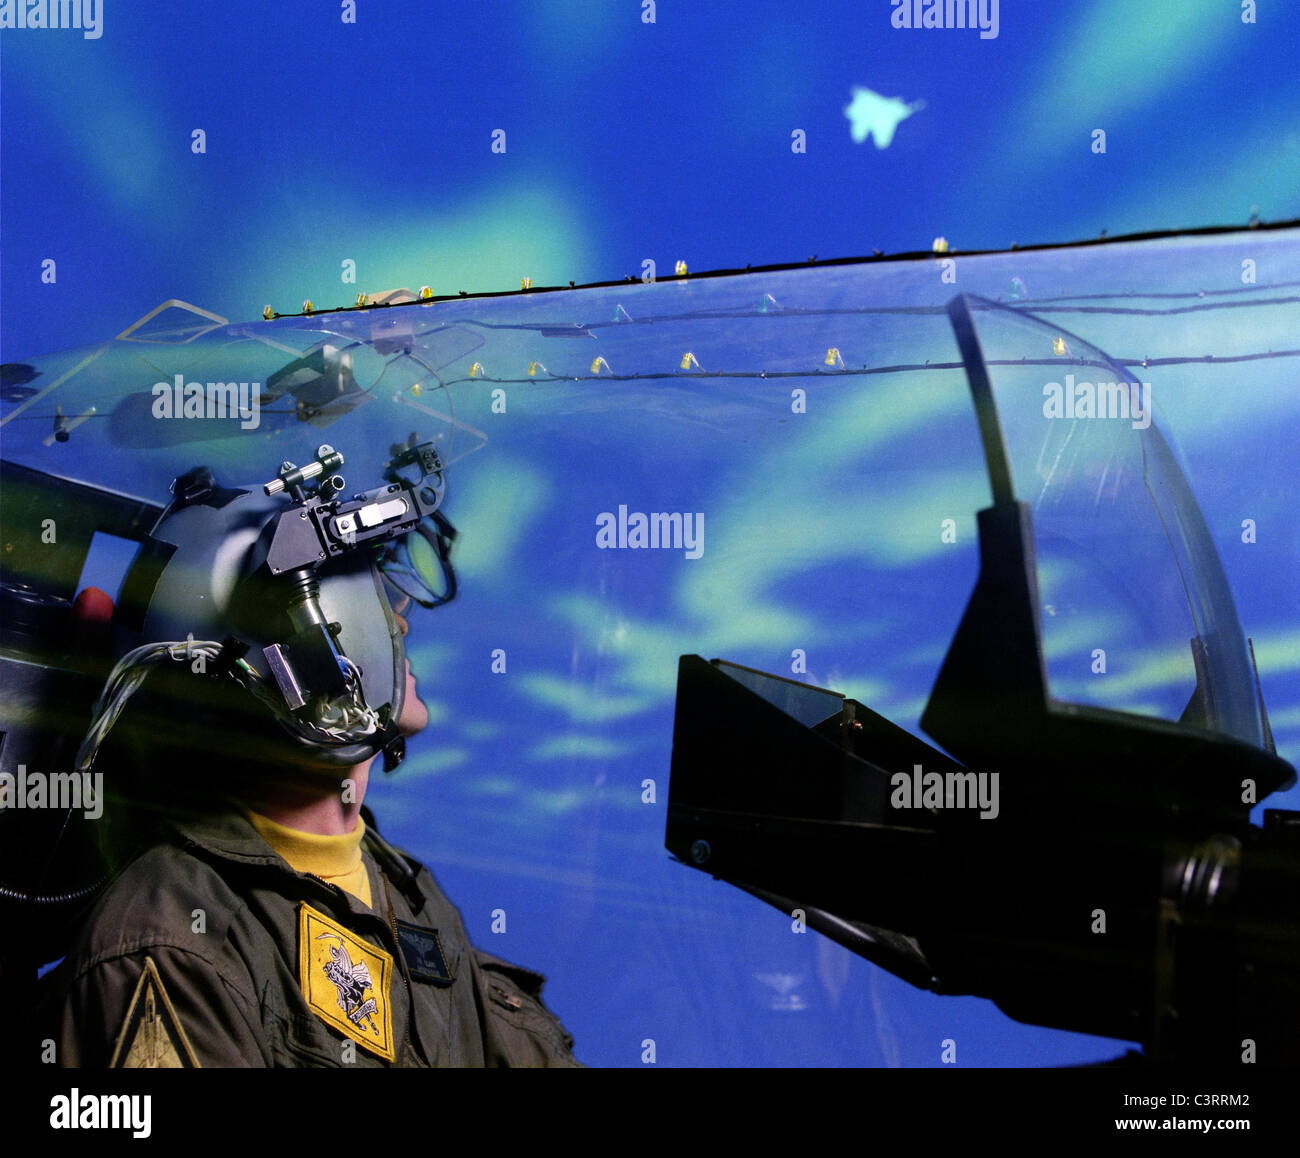 High Performance Aircraft Helmet Mounted Display Research. - Stock Image